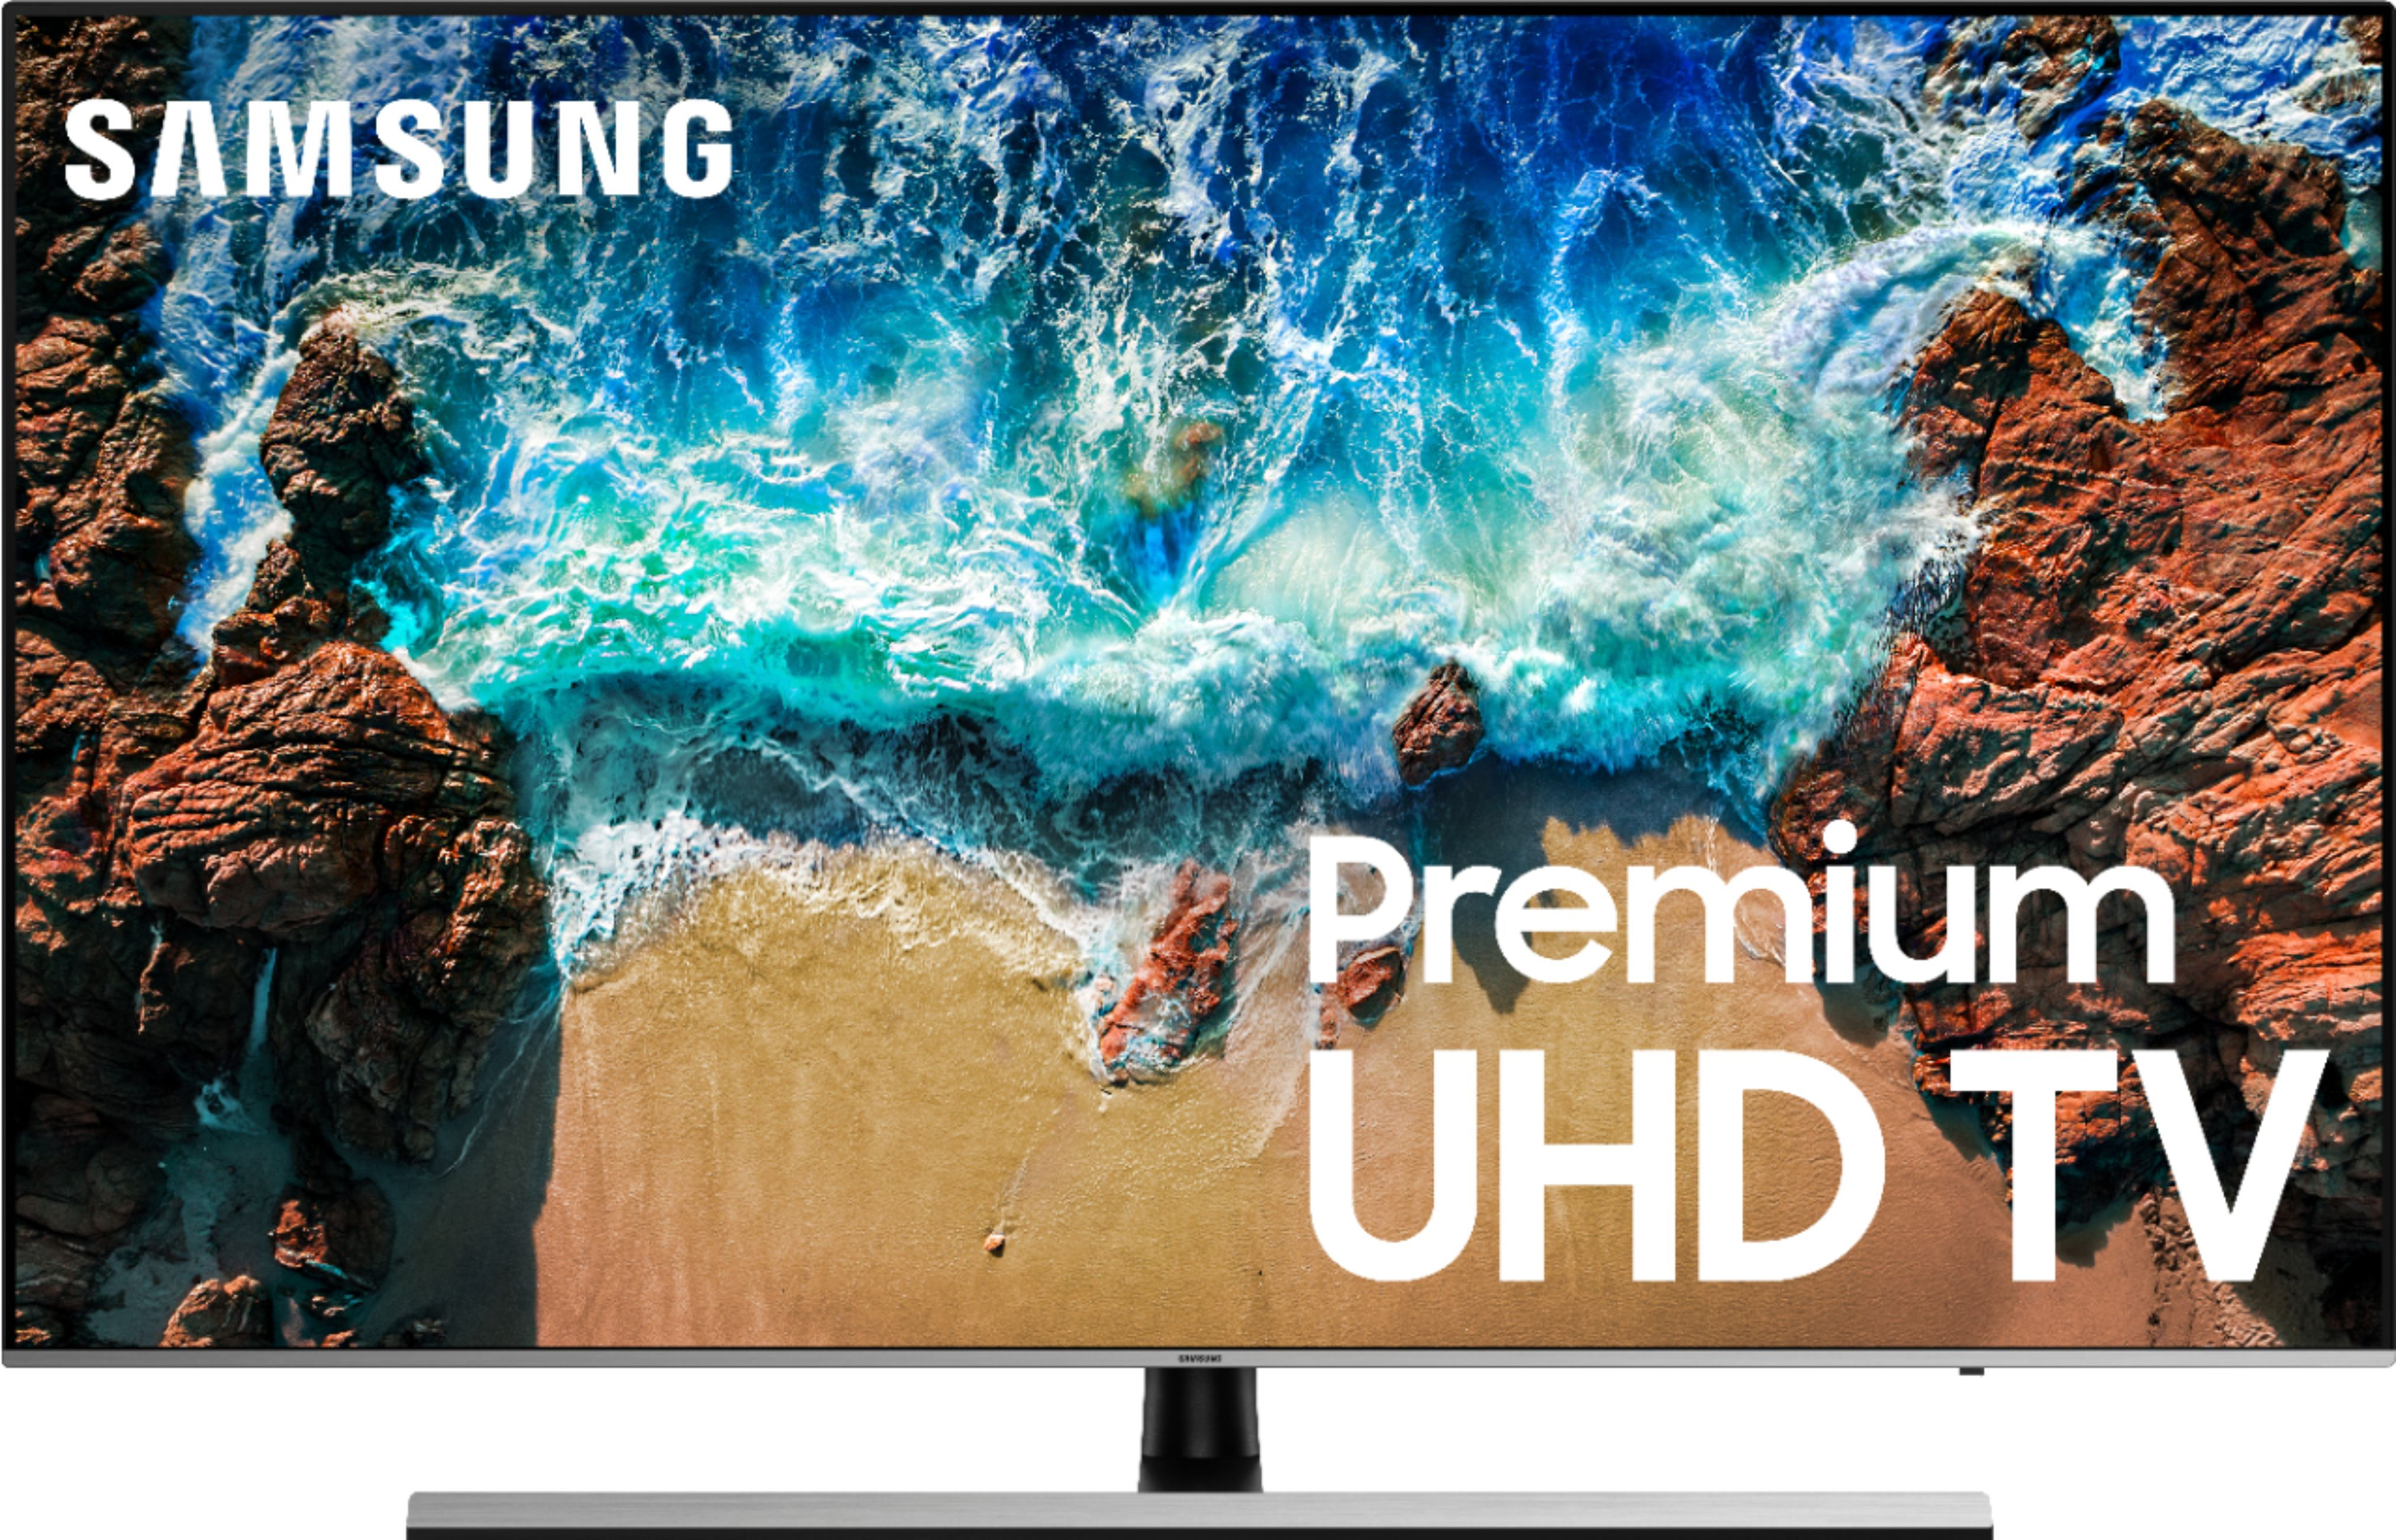 """Samsung 55"""" LED NU8000 Series 2160p Smart 4K UHD TV with HDR r Front"""